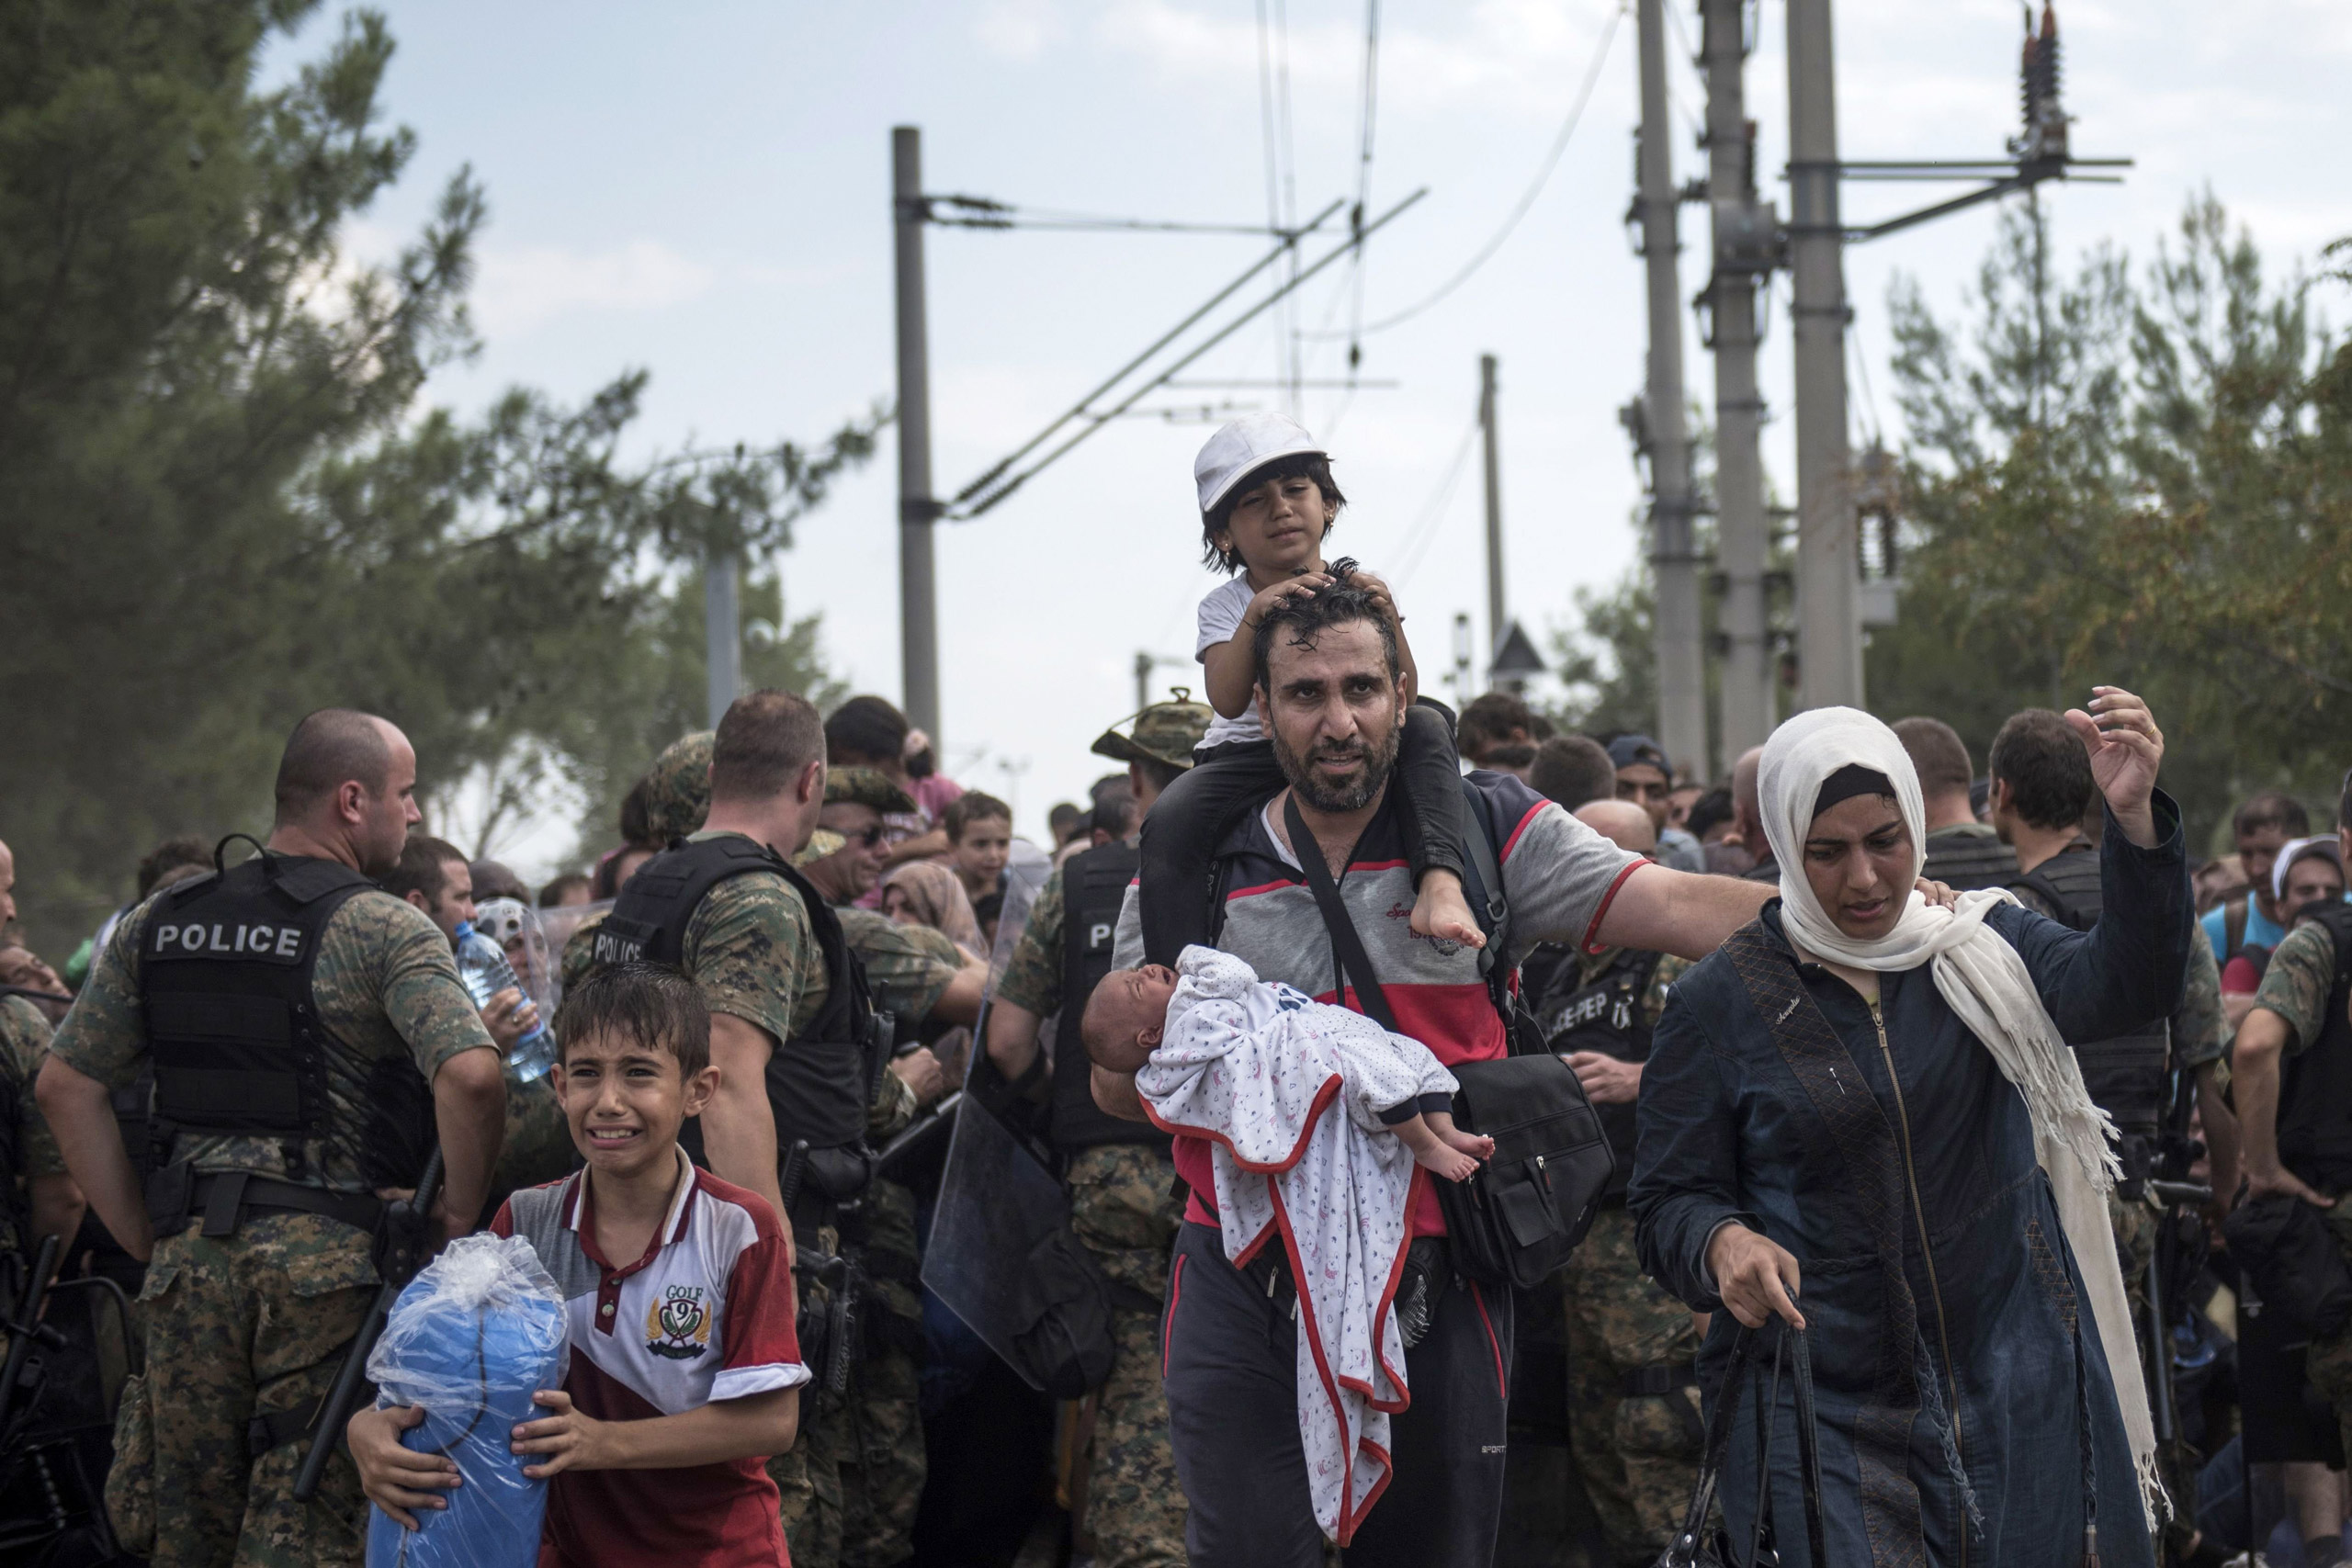 A family of migrants enters Macedonia after being held in the border zone, since the country had declared emergency and closed its south border with Greece, on Aug. 21, 2015.